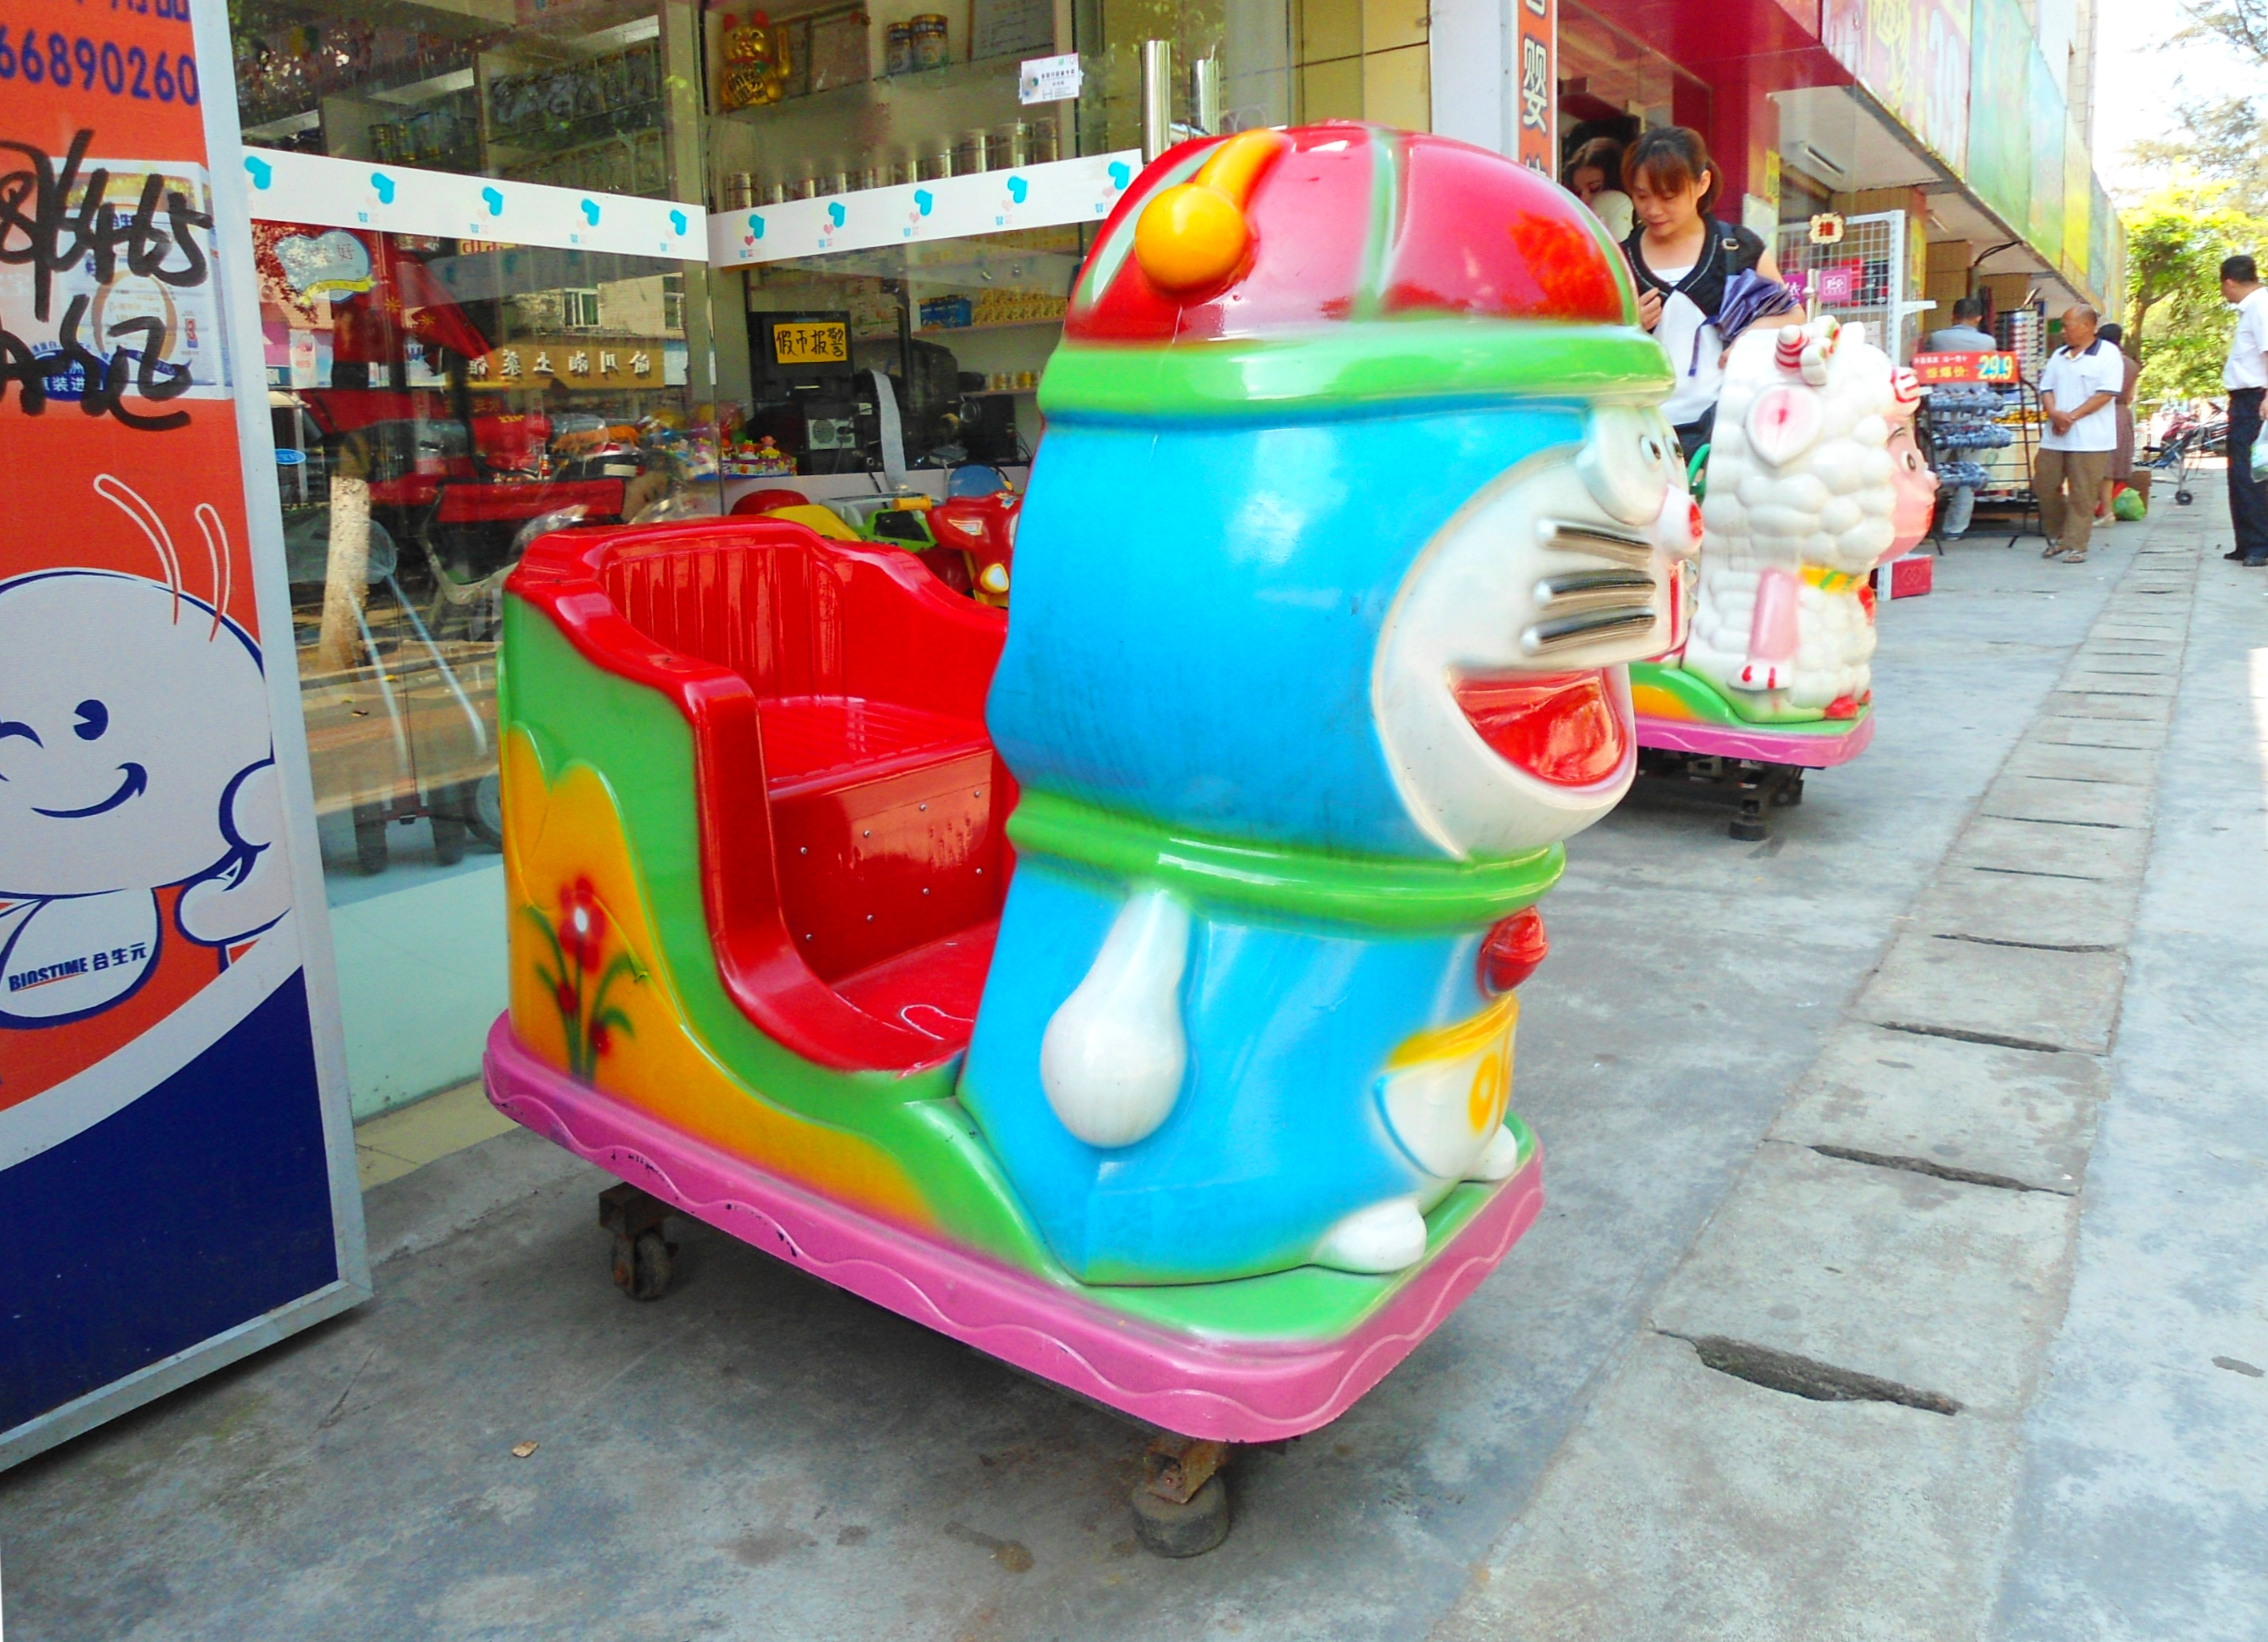 File:Kiddie ride - 01.jpg - Wikimedia Commonskiddie